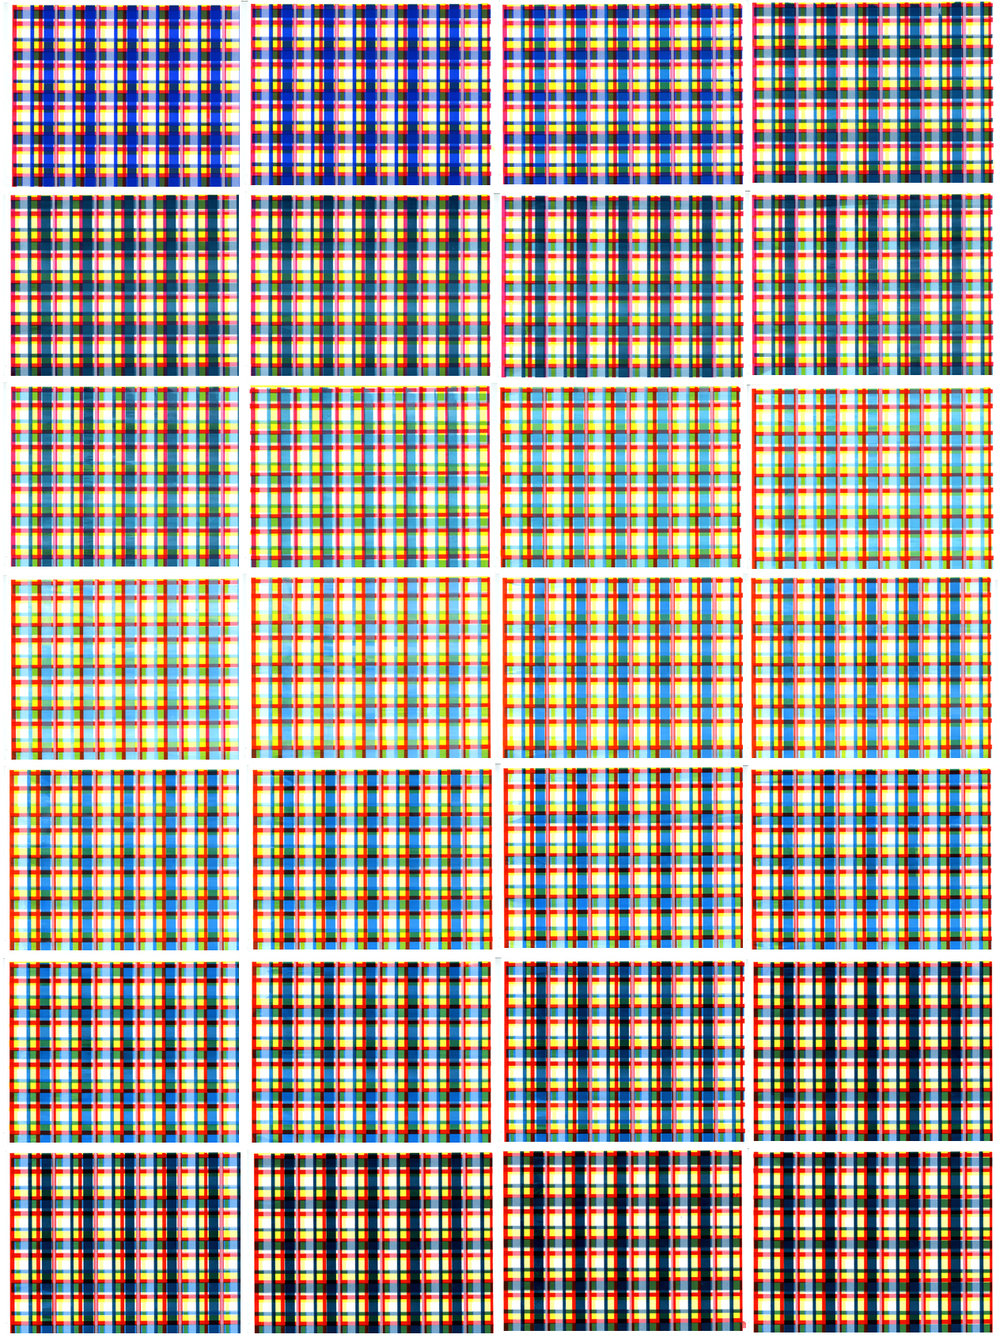 """Jennifer Schmidt,  Feeling Plaid (Screen Saver)  - 2012.   Screenprinted unique edition of 28 sequential plaid patterns. 11.5"""" x 15"""" each, to be displayed as a 53"""" x 83"""" grid. Video Animation: 3:20 minutes in duration, looped, shown on a monitor or projected."""